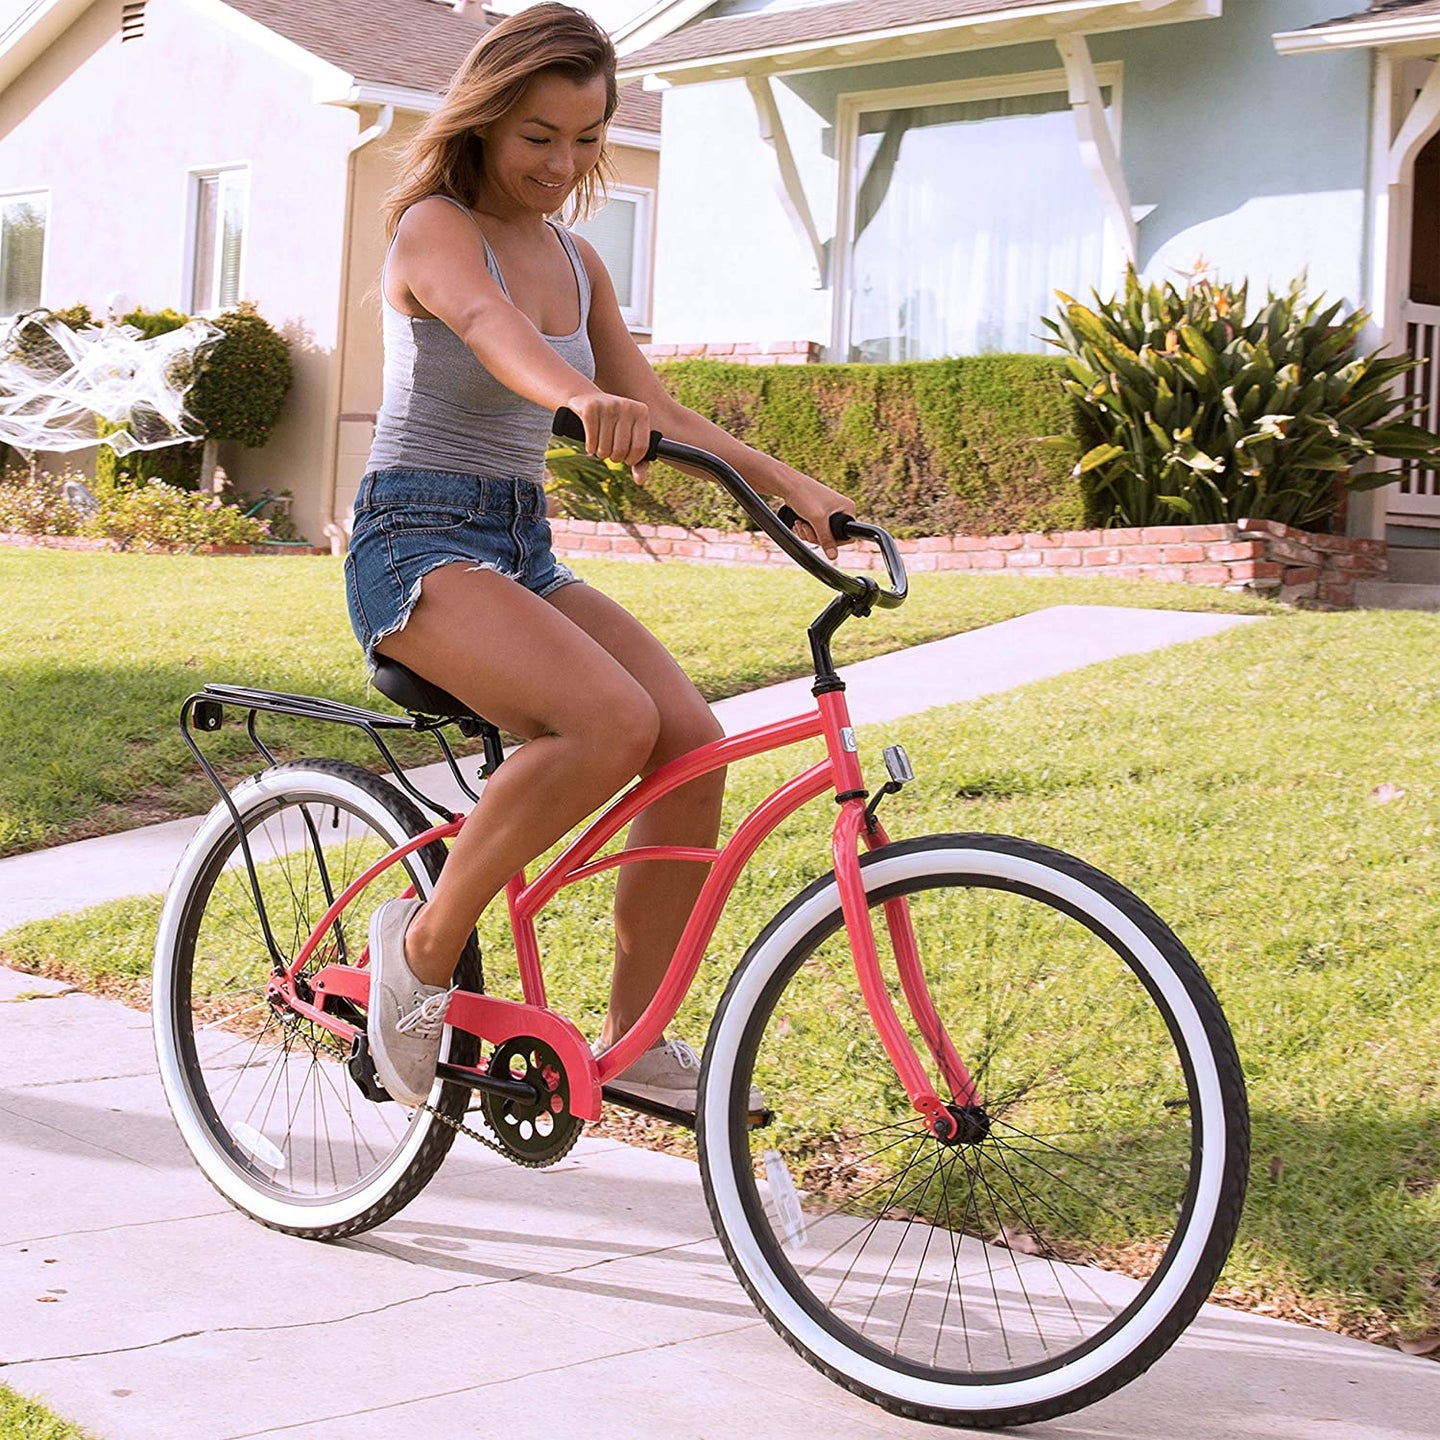 Four Cruiser Bike Styles Suited for Any Adventure